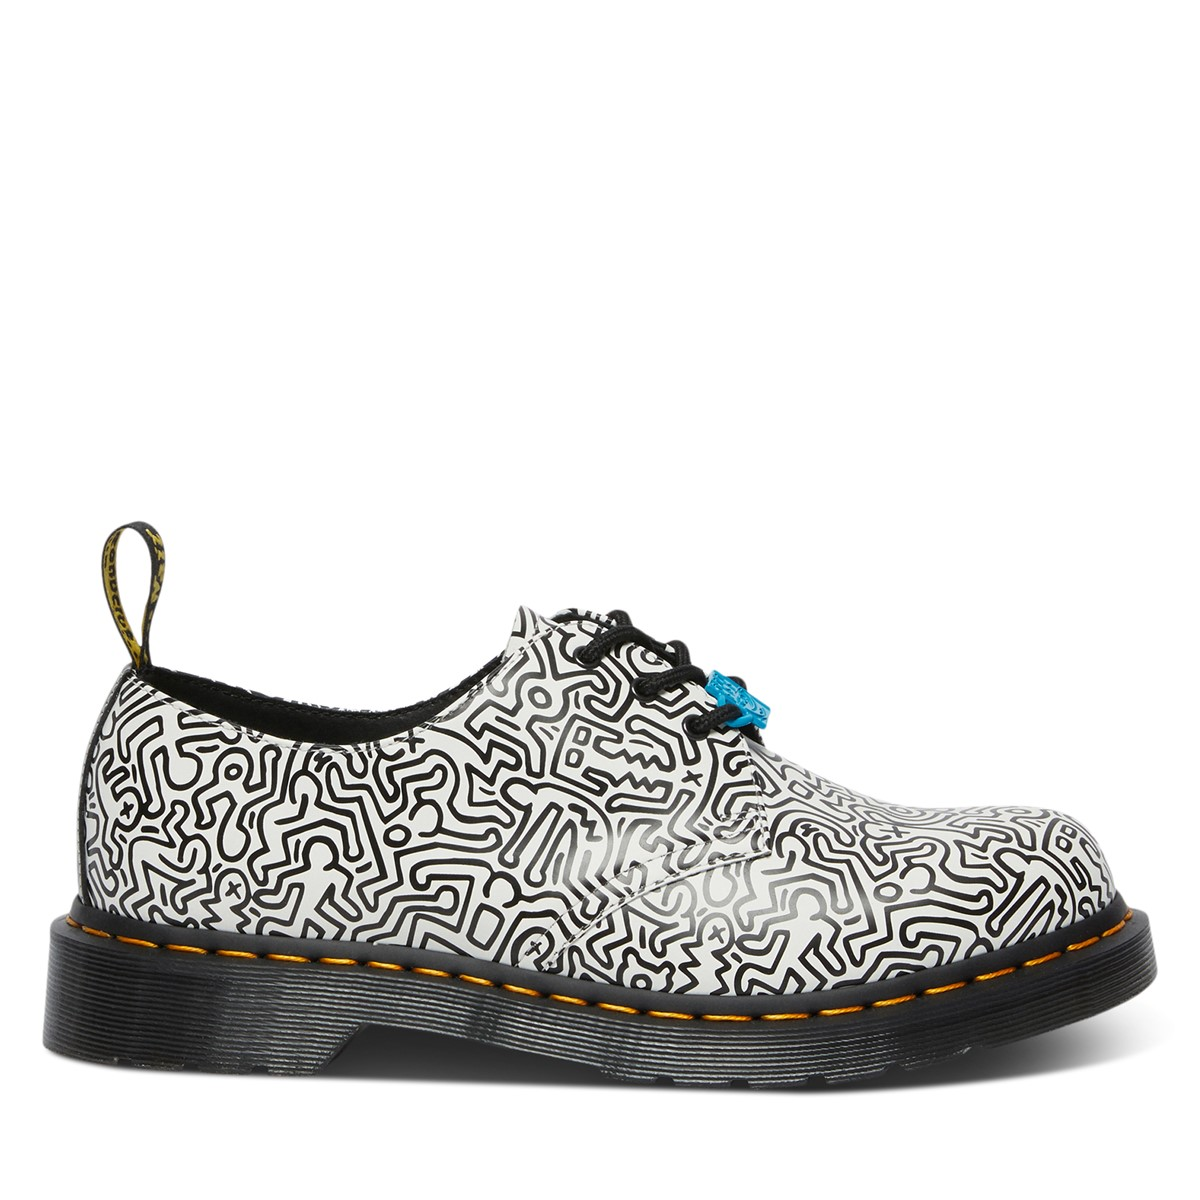 Keith Haring x Dr. Martens 1461 Oxford Shoes in White/Black